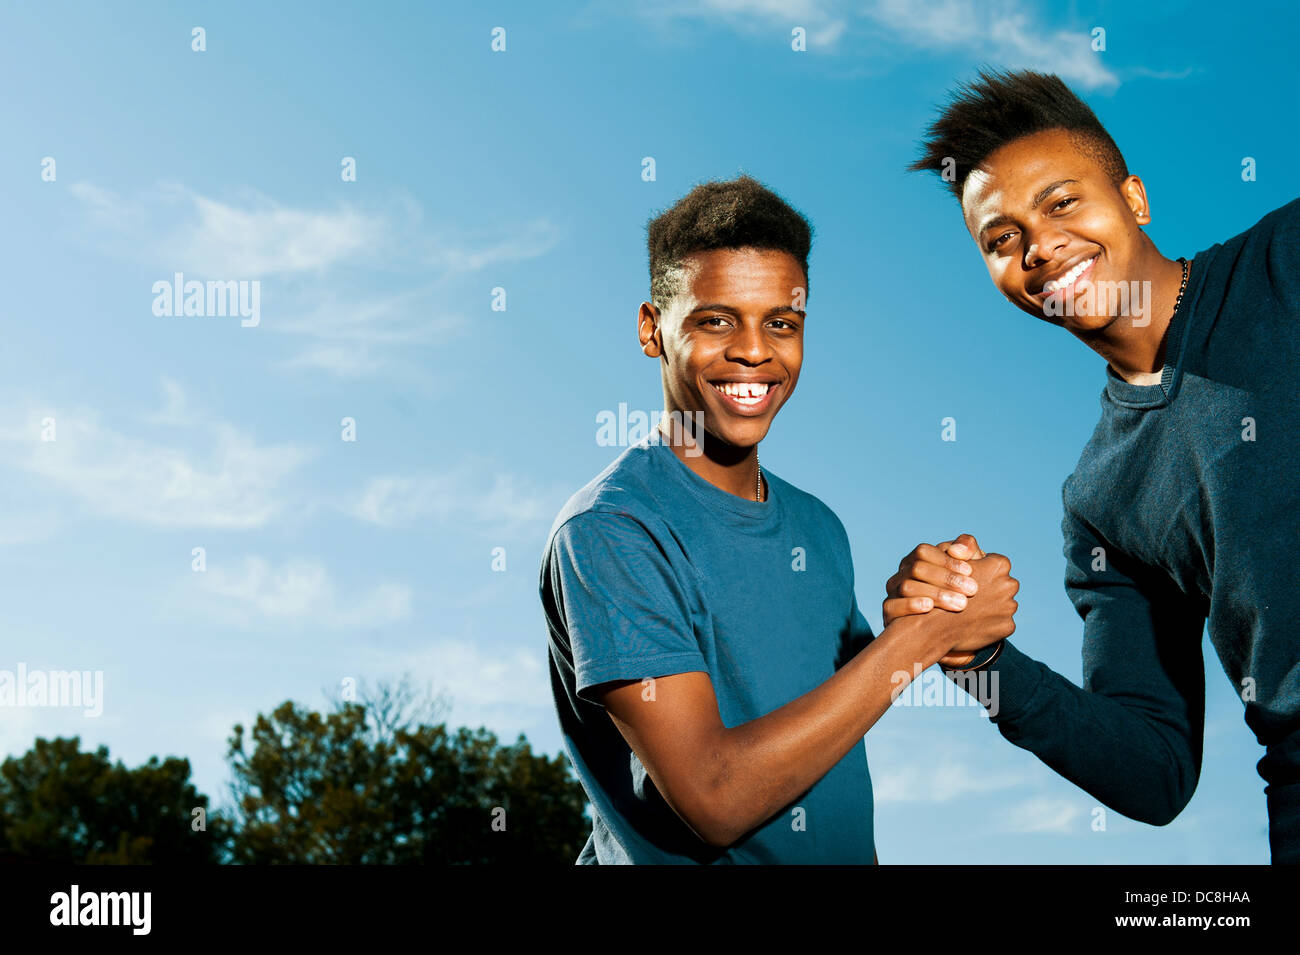 Black People Greeting Each Other Stock Photos Black People